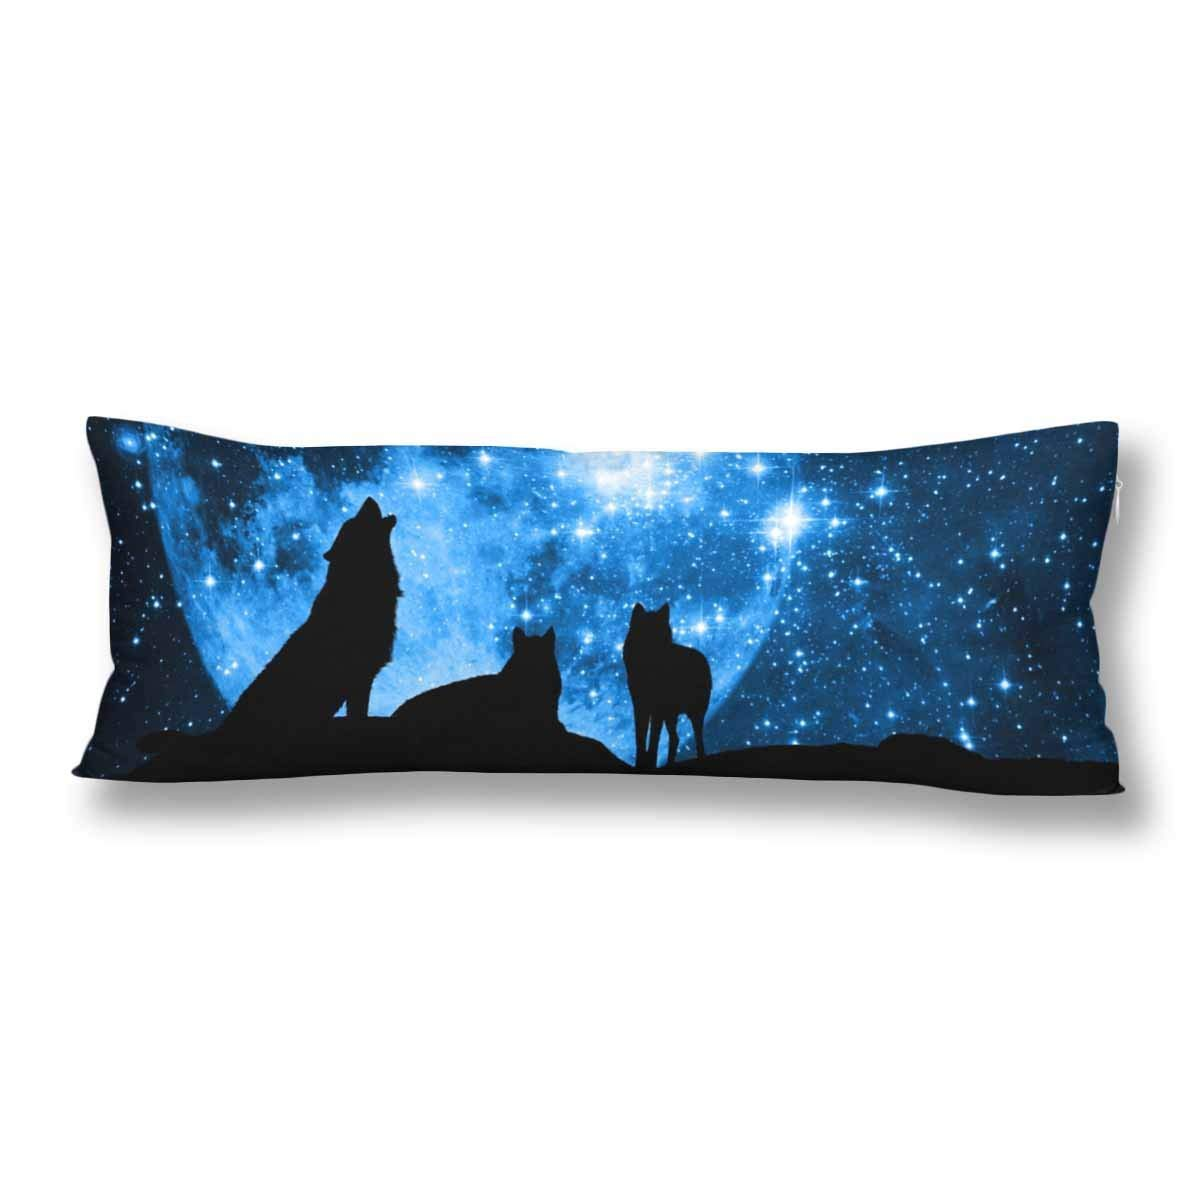 abphoto wolf silhouette full moon body pillow covers pillowcase 20x60 inch blue starred sky body pillow case protector walmart com